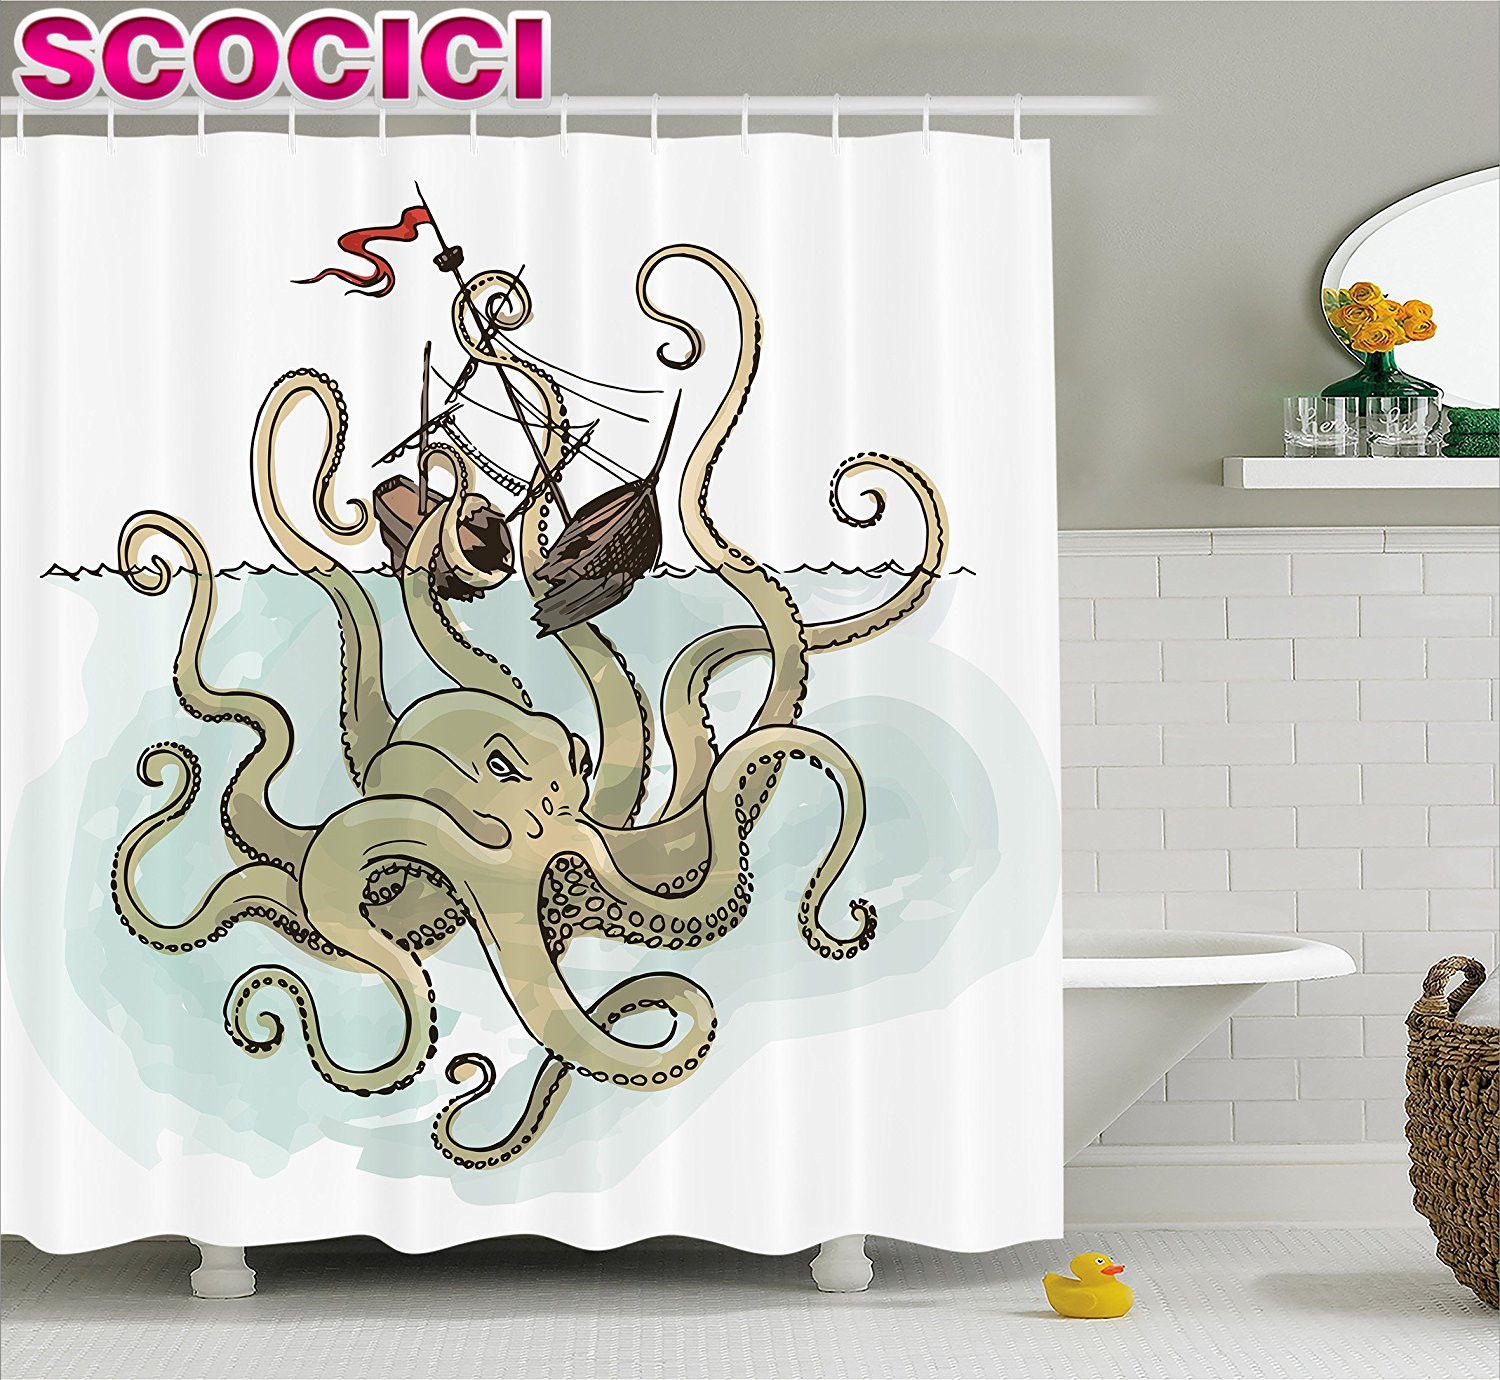 Pirate bathroom decor - Kraken Decor Shower Curtain Octopus Sinking The Pirate Ships Greek Myth Fish Culture Cartoon Art Image Fabric Bathroom Decor Set